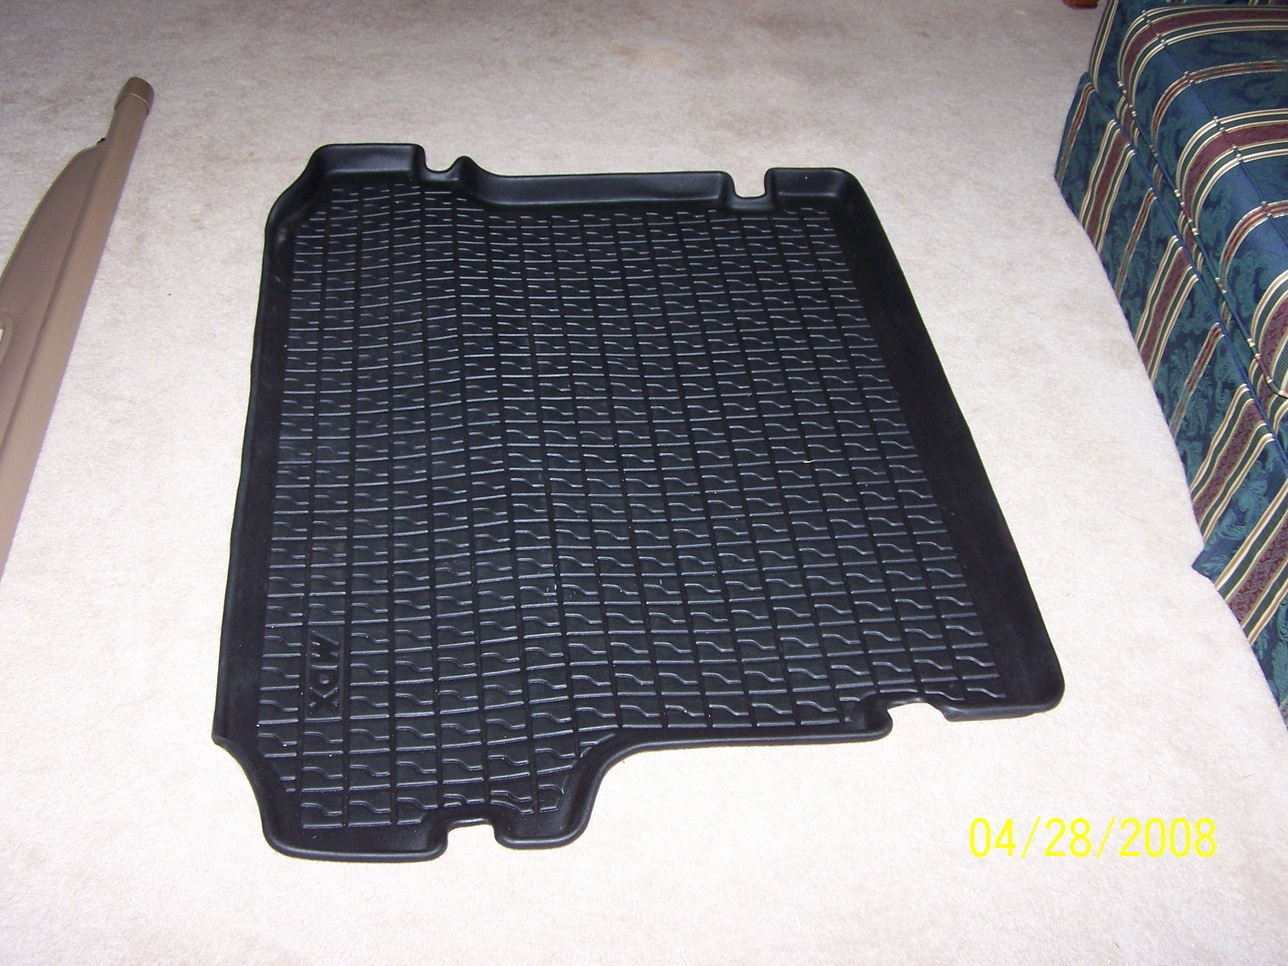 Cargo Tray/Cargo Cover for Sale-rsz_100_3737.jpg